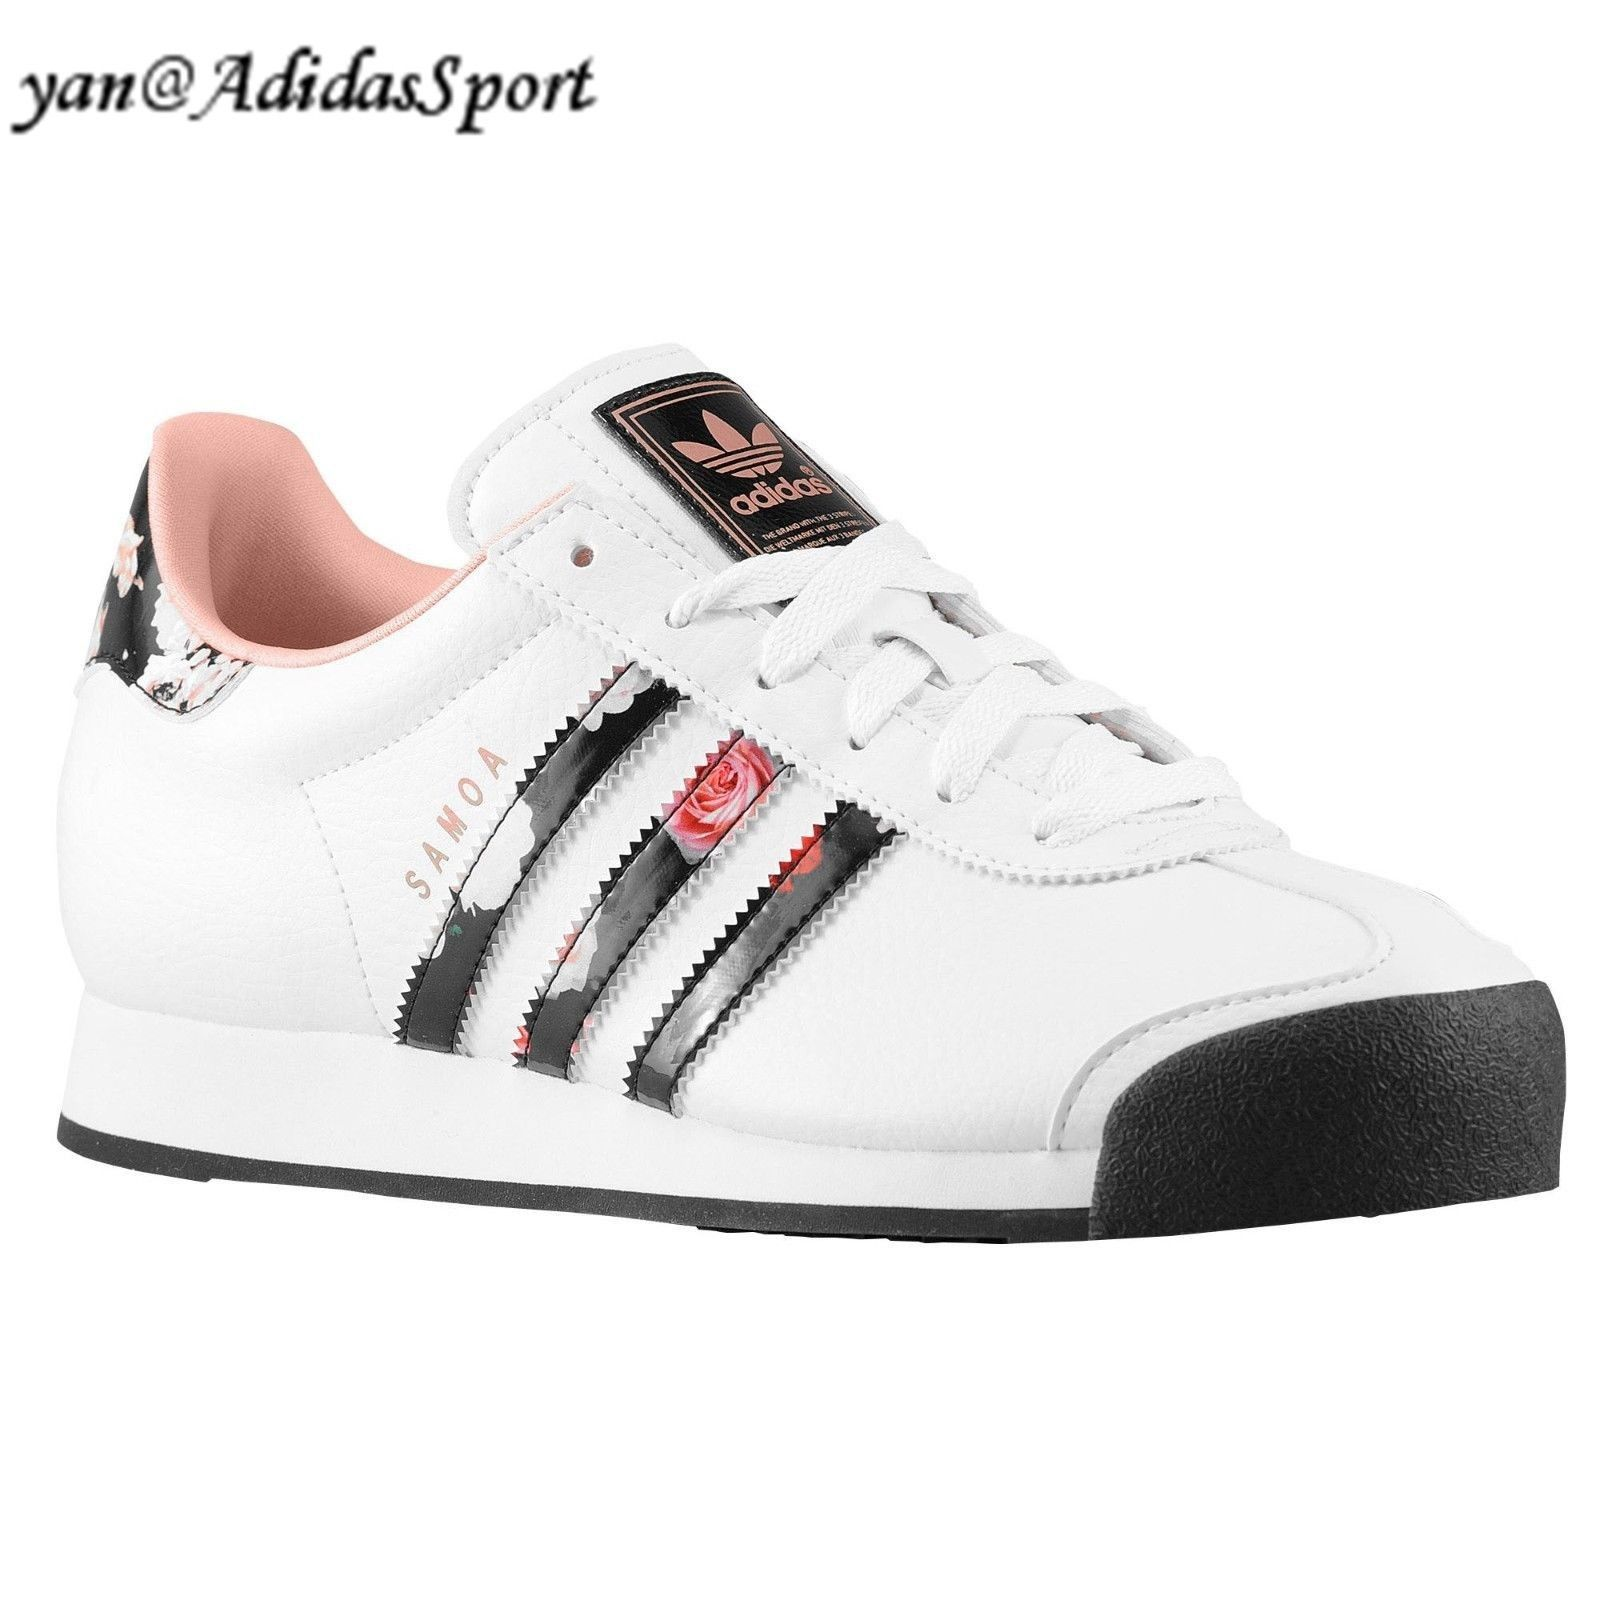 free shipping 83ce6 210fa Calidad Adidas Originals Mujeres Samoa Flor Imprimir Retro Zapatillas Blanco  Fundido Rose Negro Madrid Catalogo